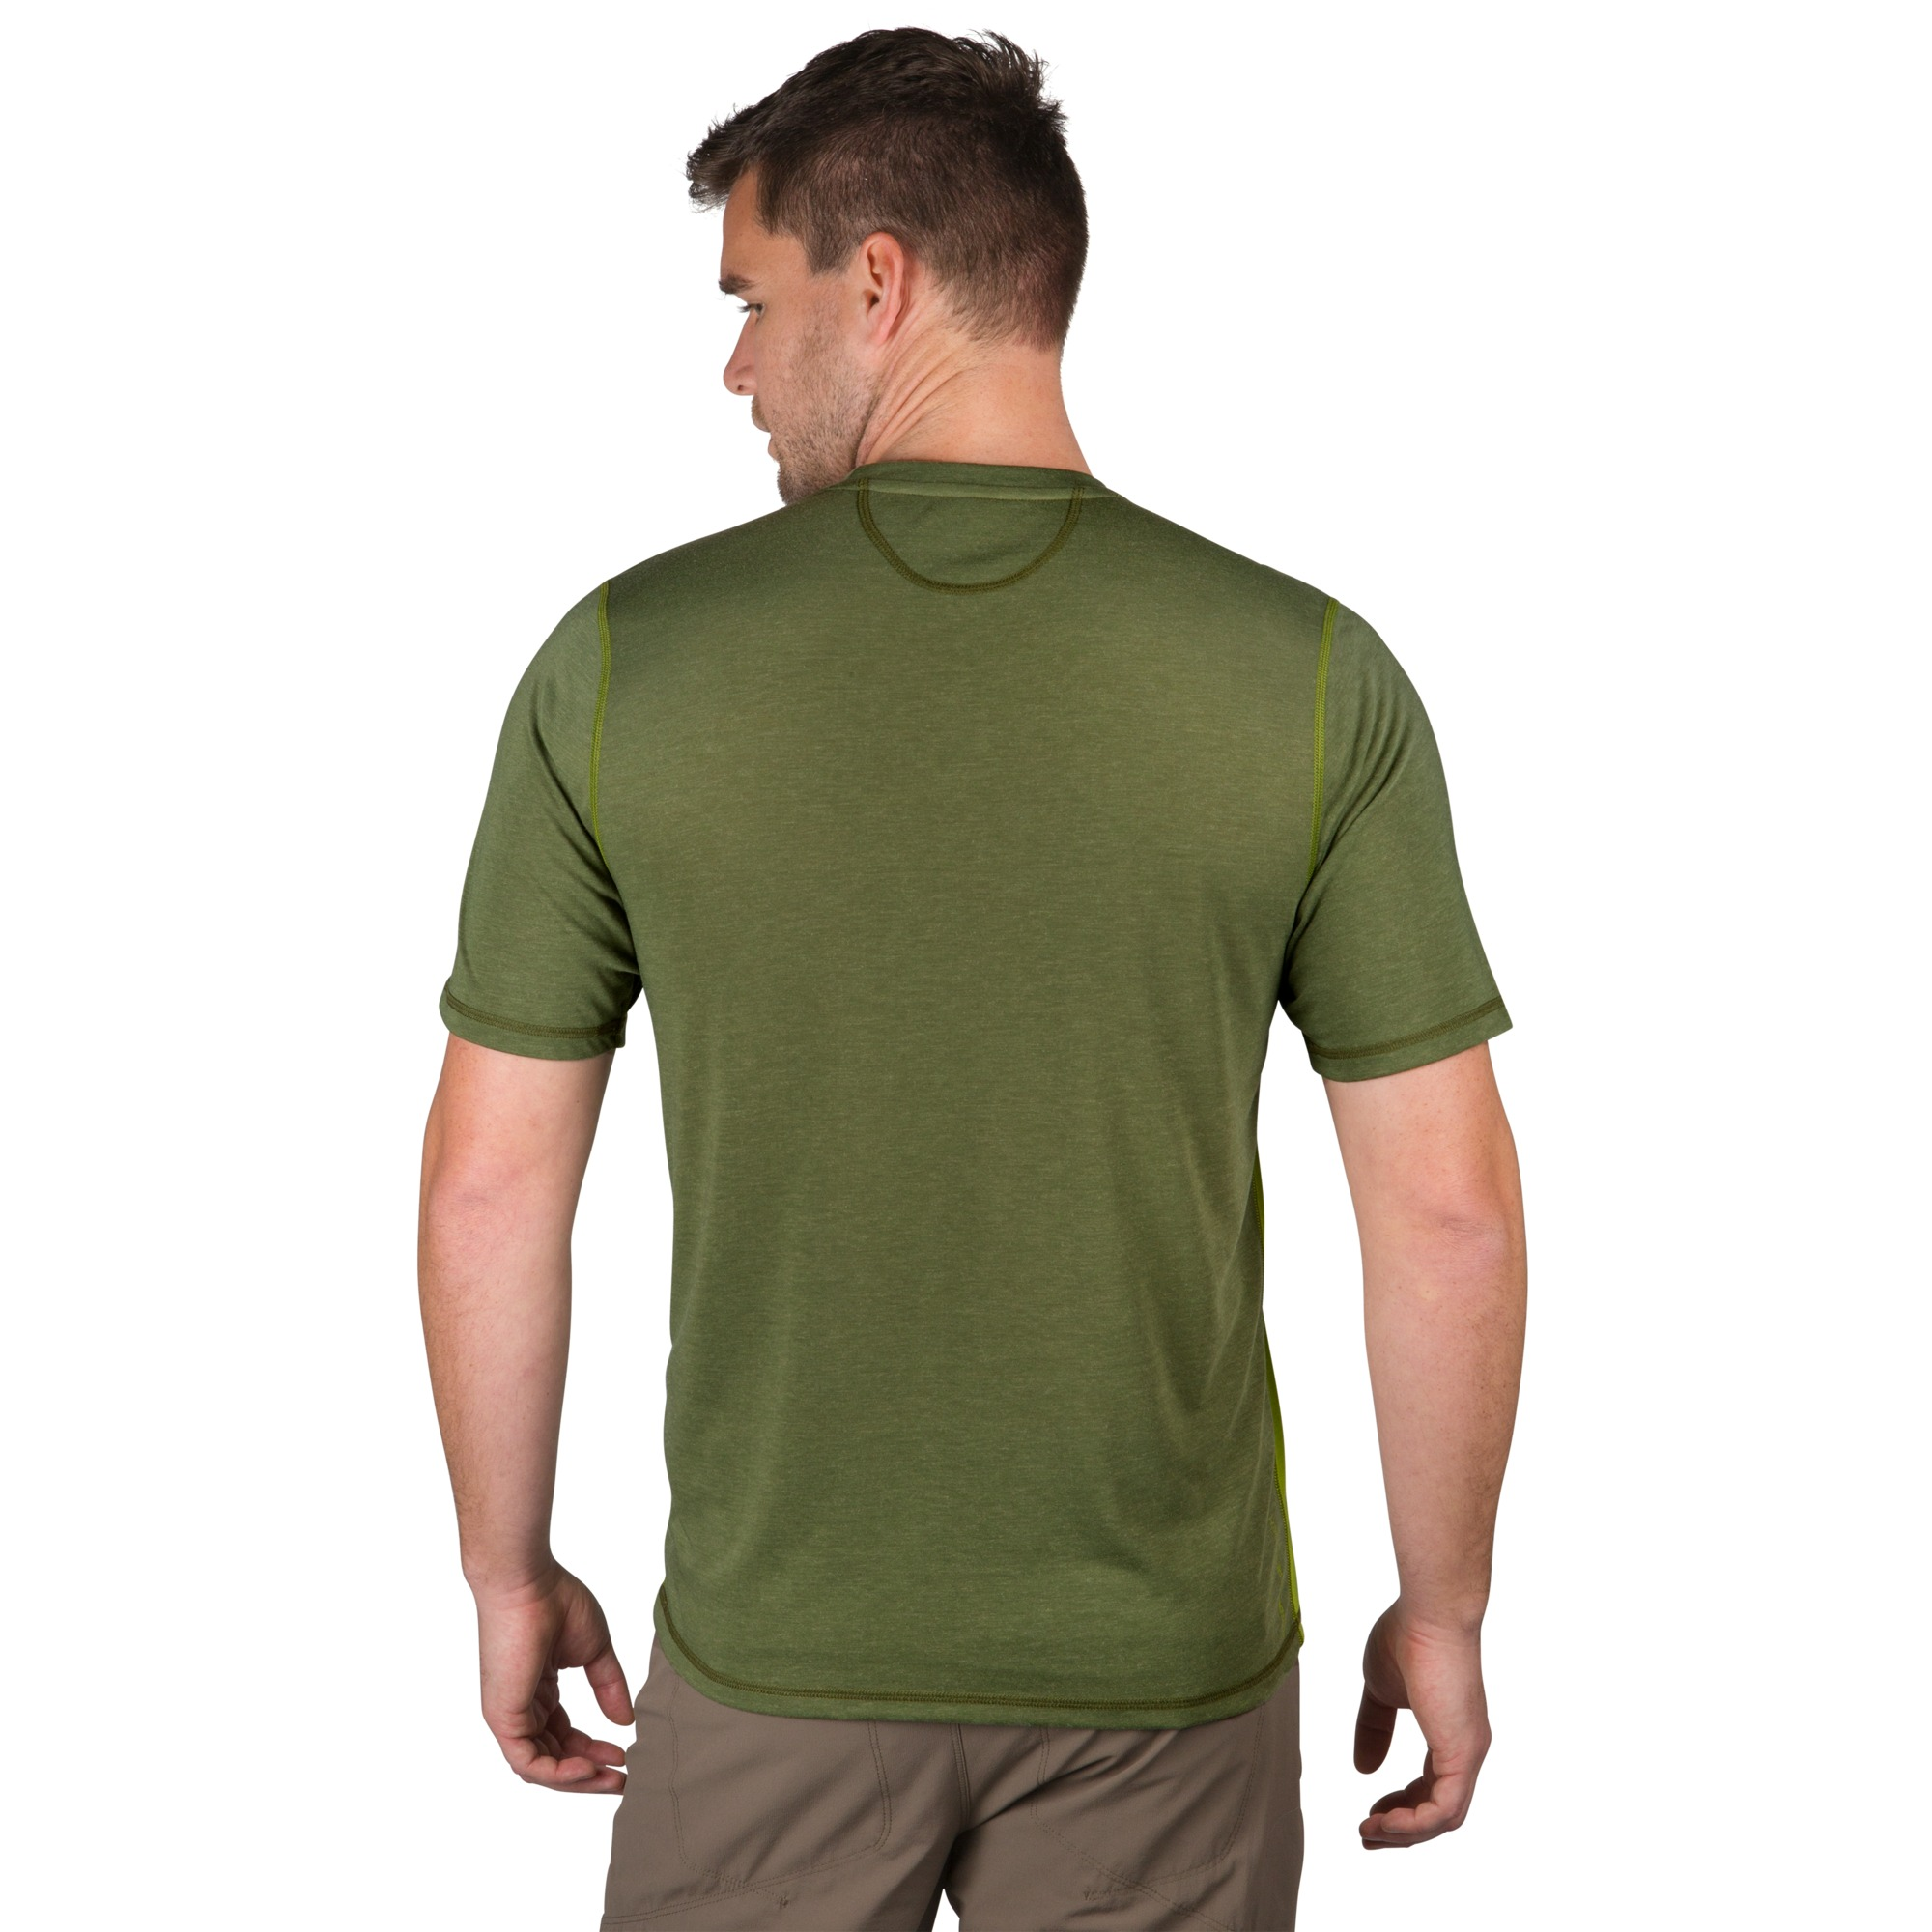 f83a5de583fd9 Men's Sequence Duo Tee - pewter/charcoal | Outdoor Research